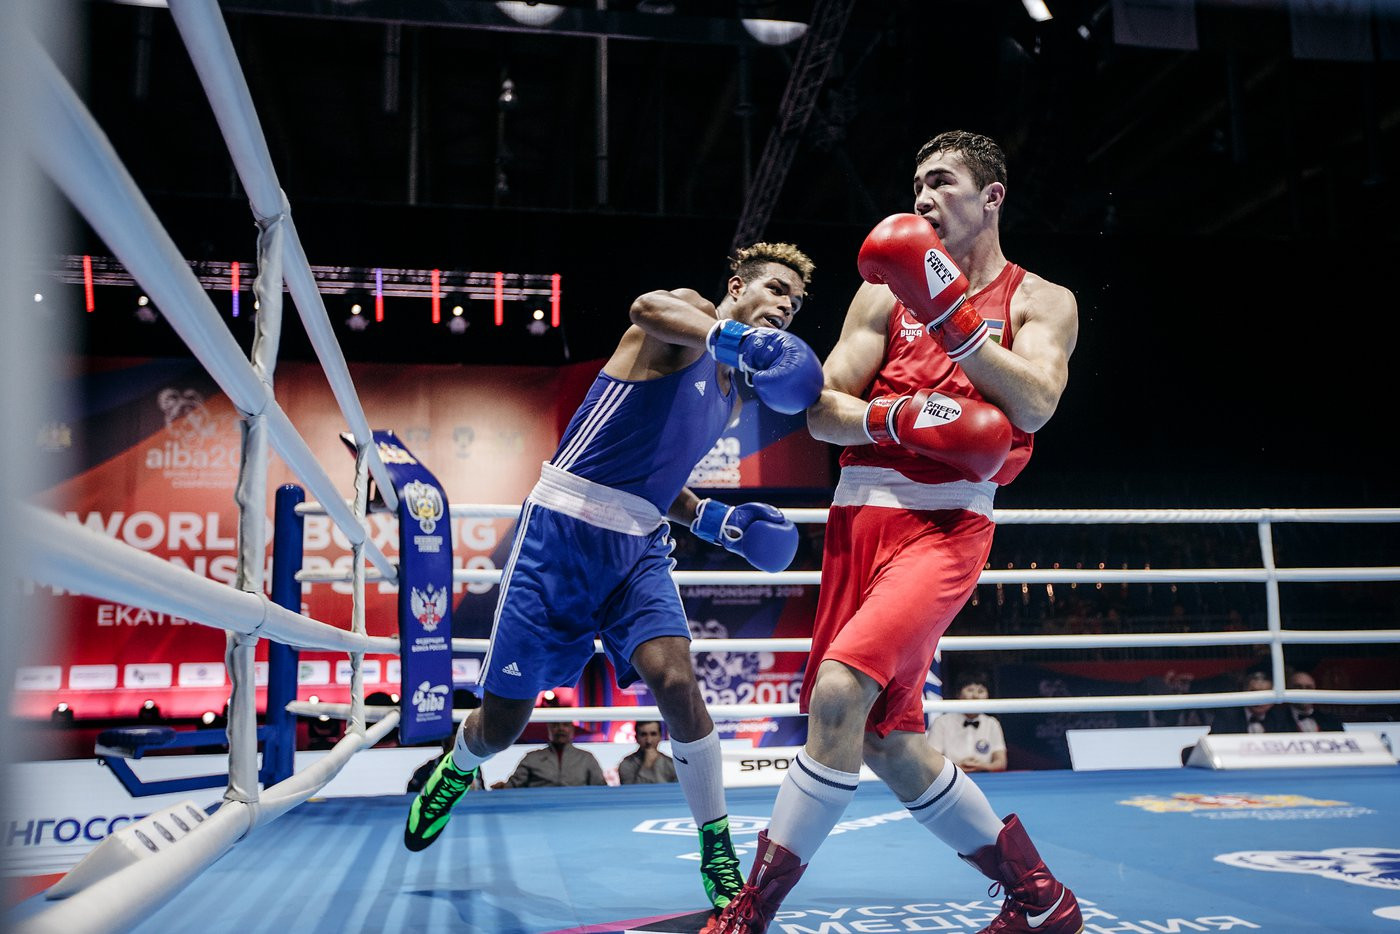 insidethegames is reporting LIVE from the AIBA Men's World Championships in Yekaterinburg